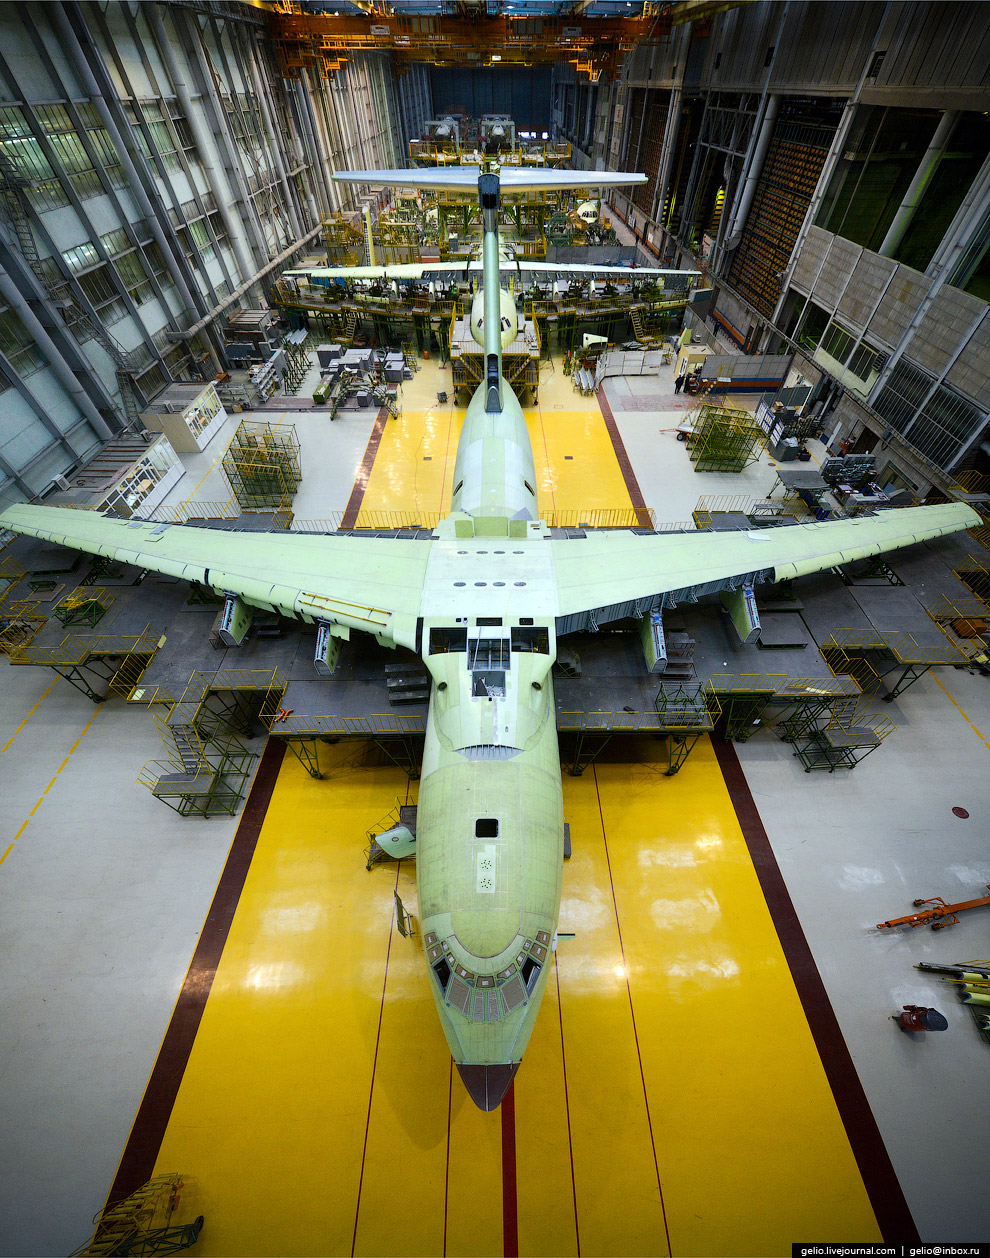 The production of Il-76 and Tu-204 at the plant Aviastar-SP 14